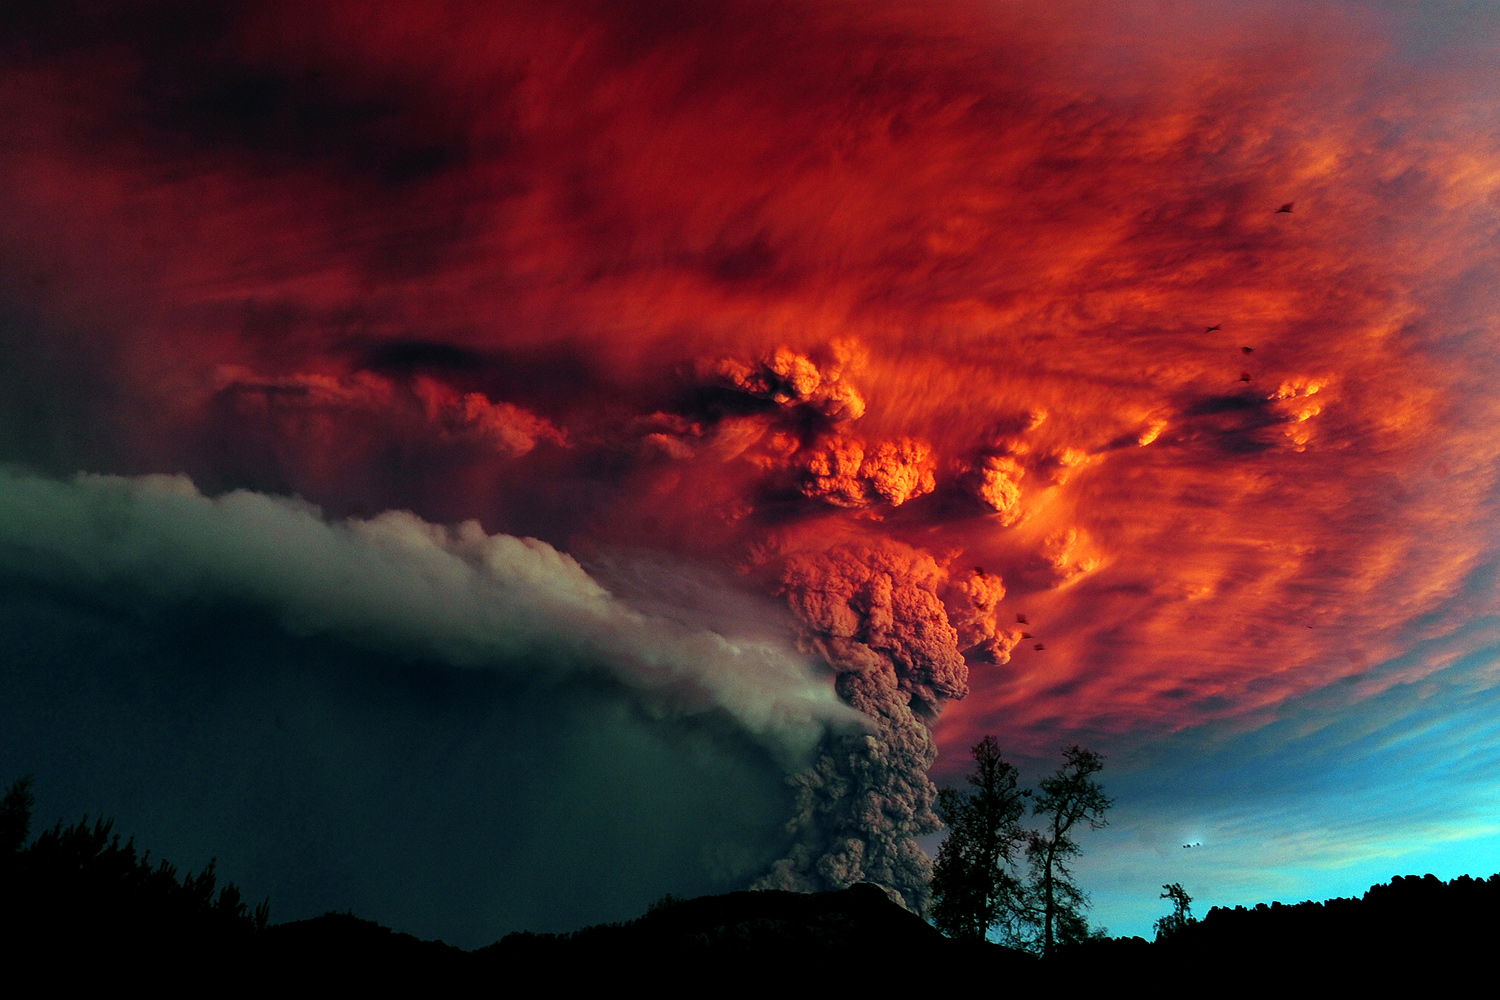 June 5, 2011. A cloud of ash billowing from Puyehue volcano near Osorno in southern Chile.